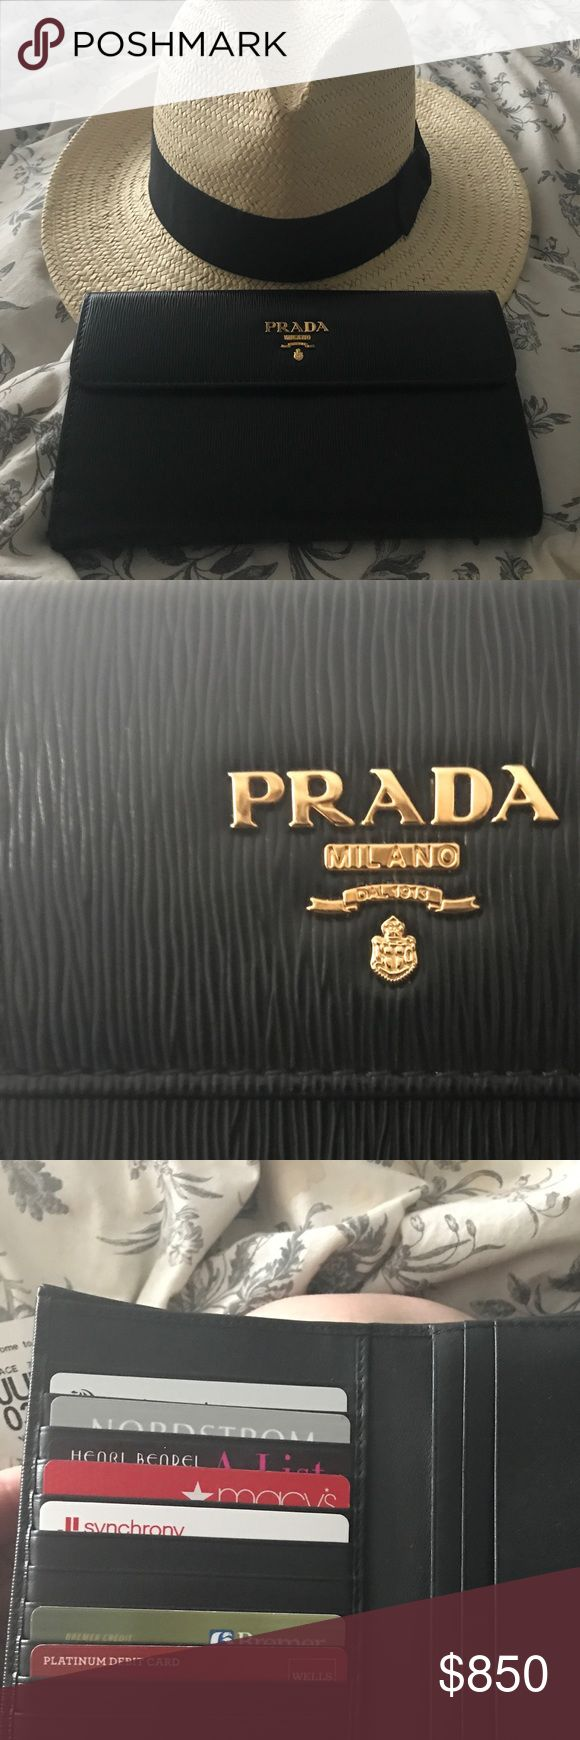 Prada wallet NWOT. Added the cards to show how many it can hold!!! Black leather! Comes with authenticity card and box! AUTHENTIC!!!! Price is FIRM!!!!! Thank you for looking!!! Prada Bags Wallets